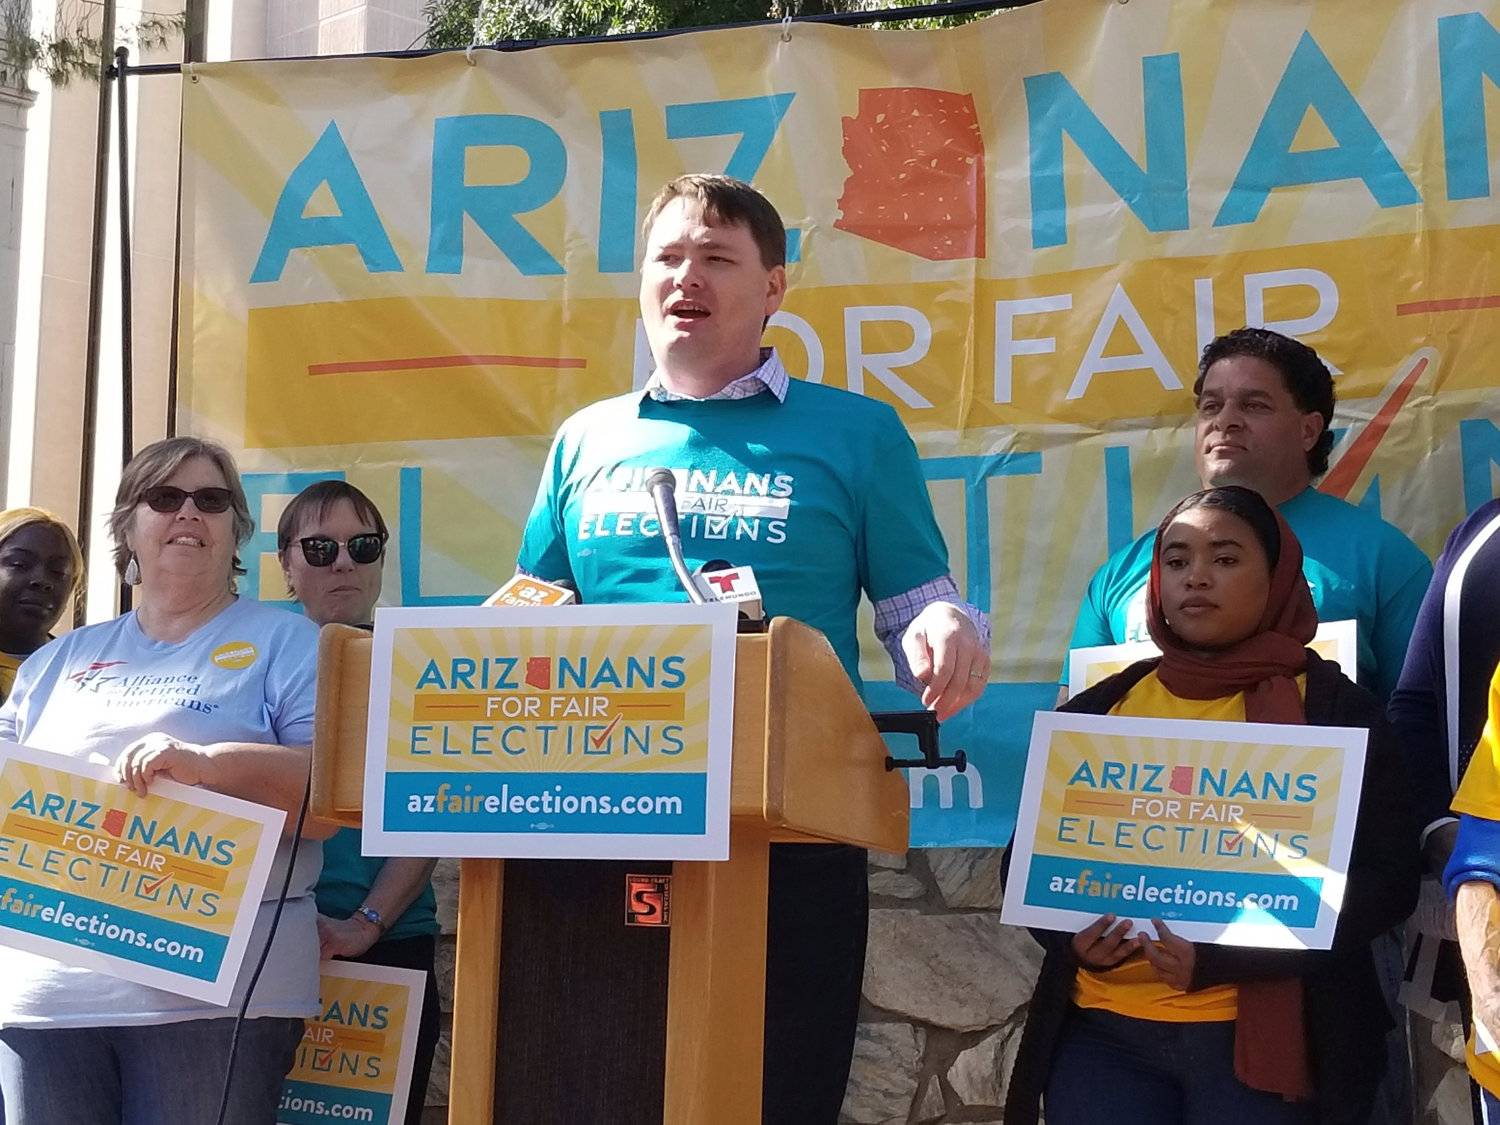 Joel Edman, of the Arizona Advocacy Network, speaks during a news conference in Phoenix on Wednesday, Oct. 30, 2019. Arizonans for Fair Elections was trying to get an ambitious set of elections reforms on the 2020 ballot.